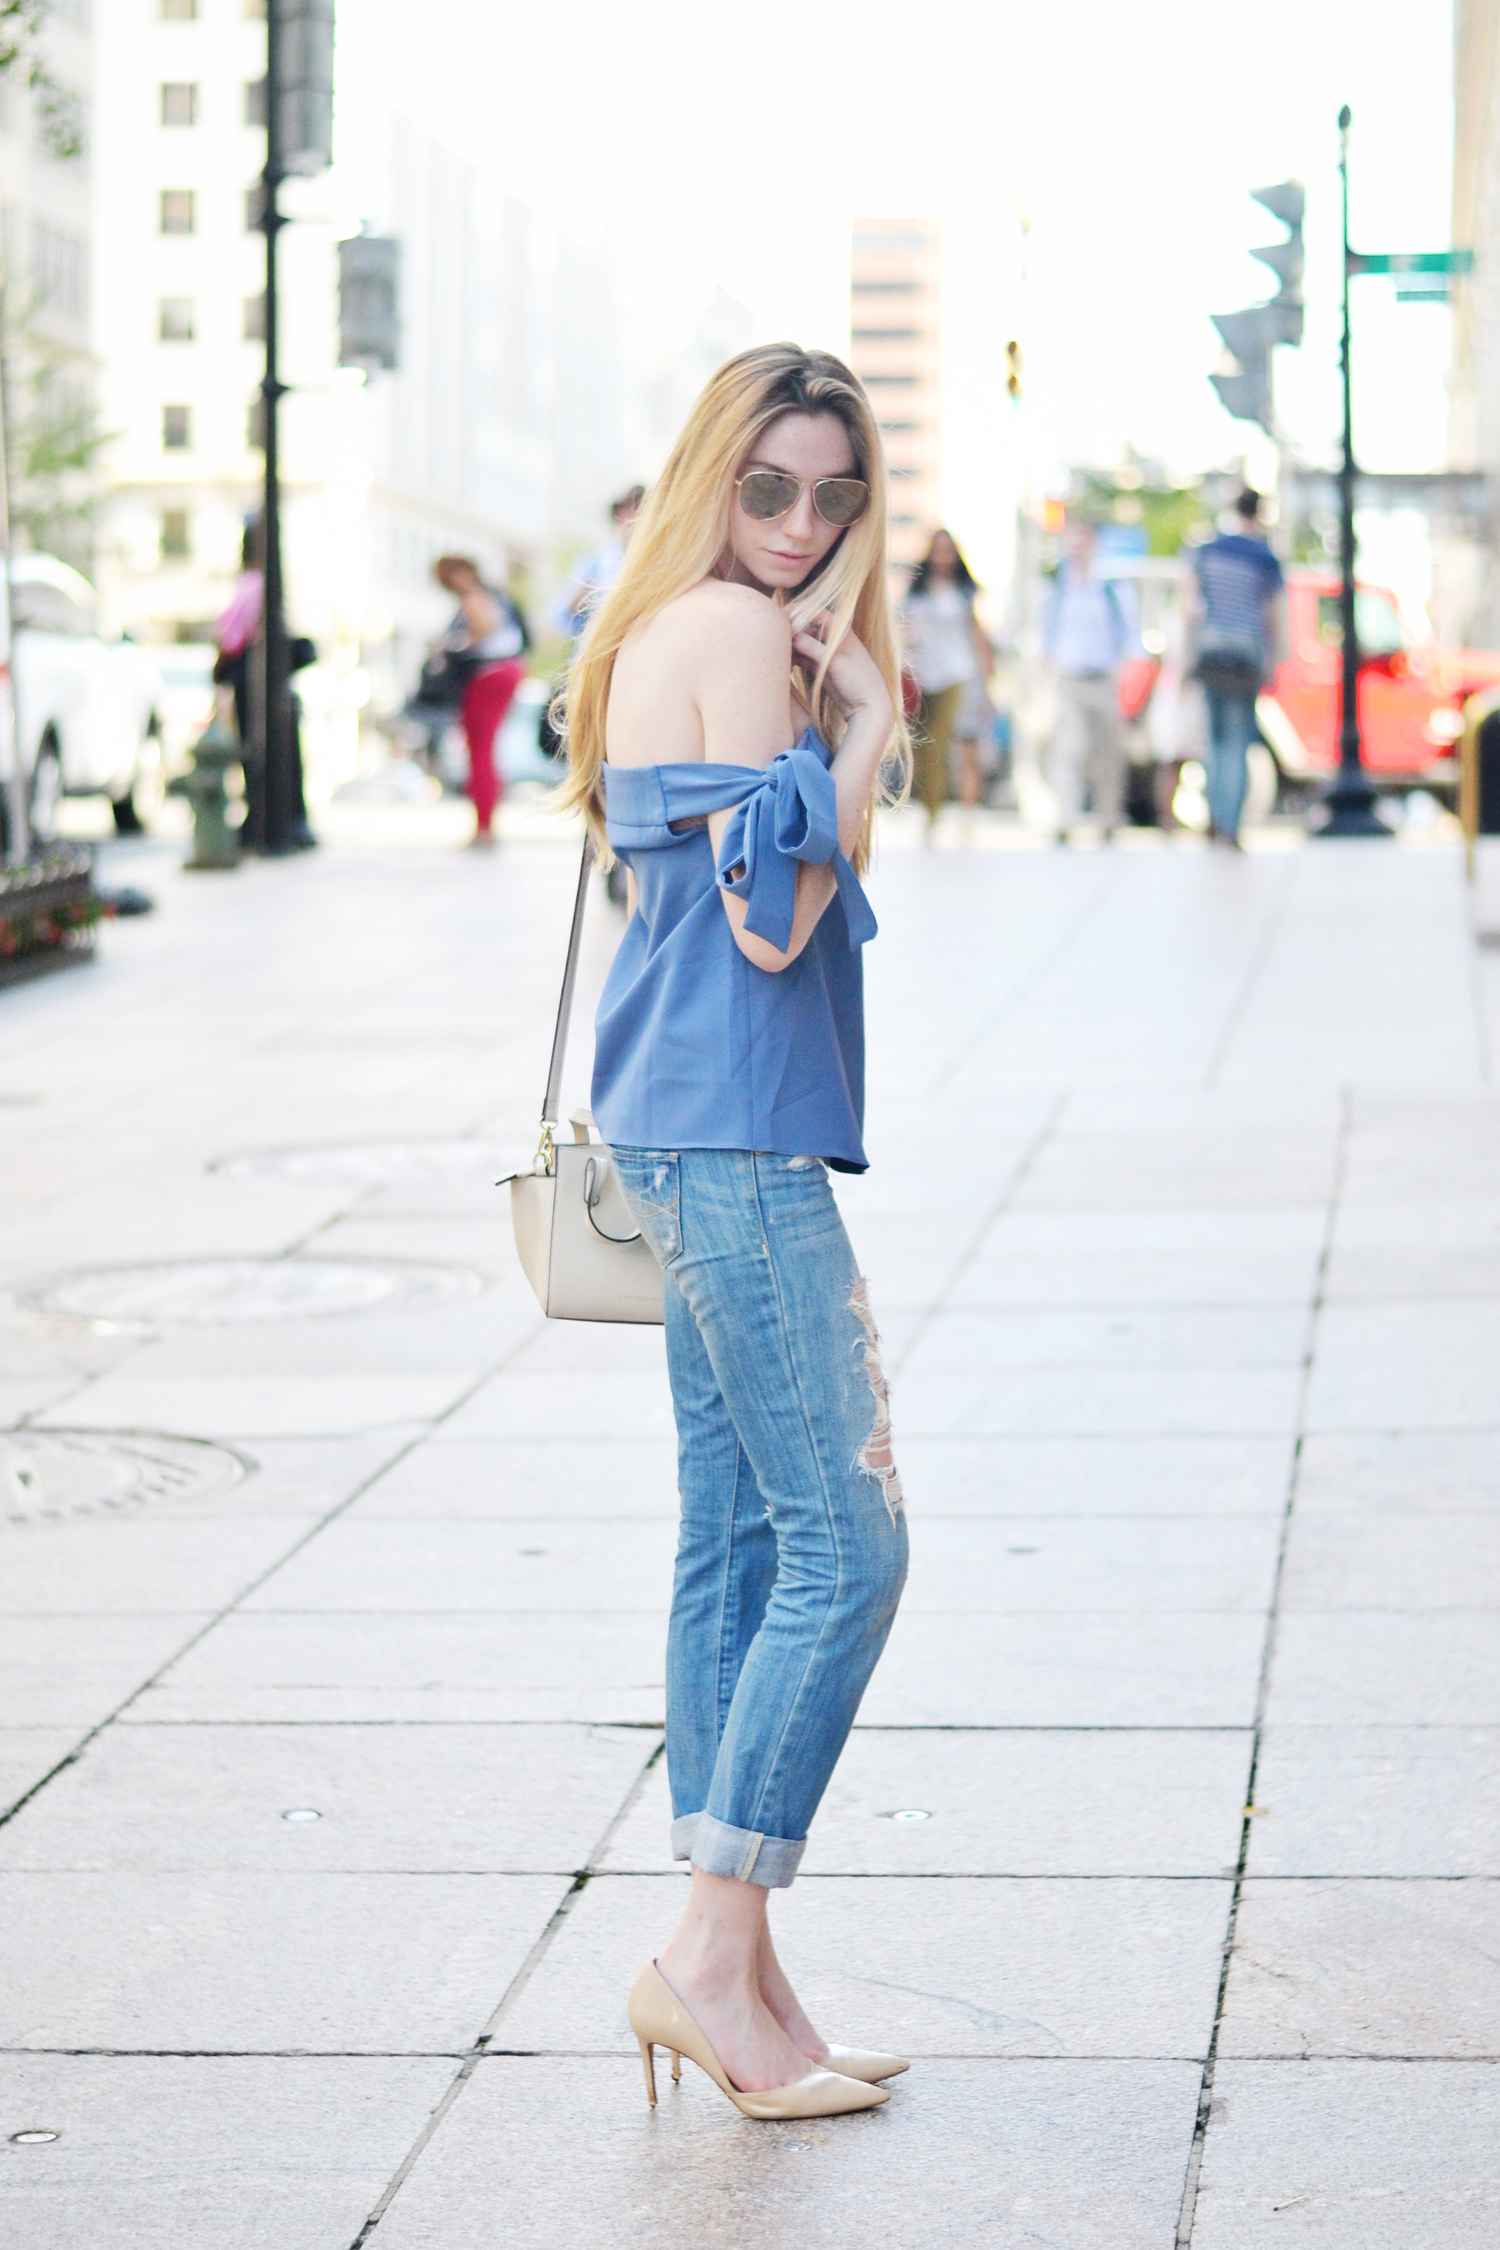 Blogger Summer Outfit Ideas (via Chic Now)